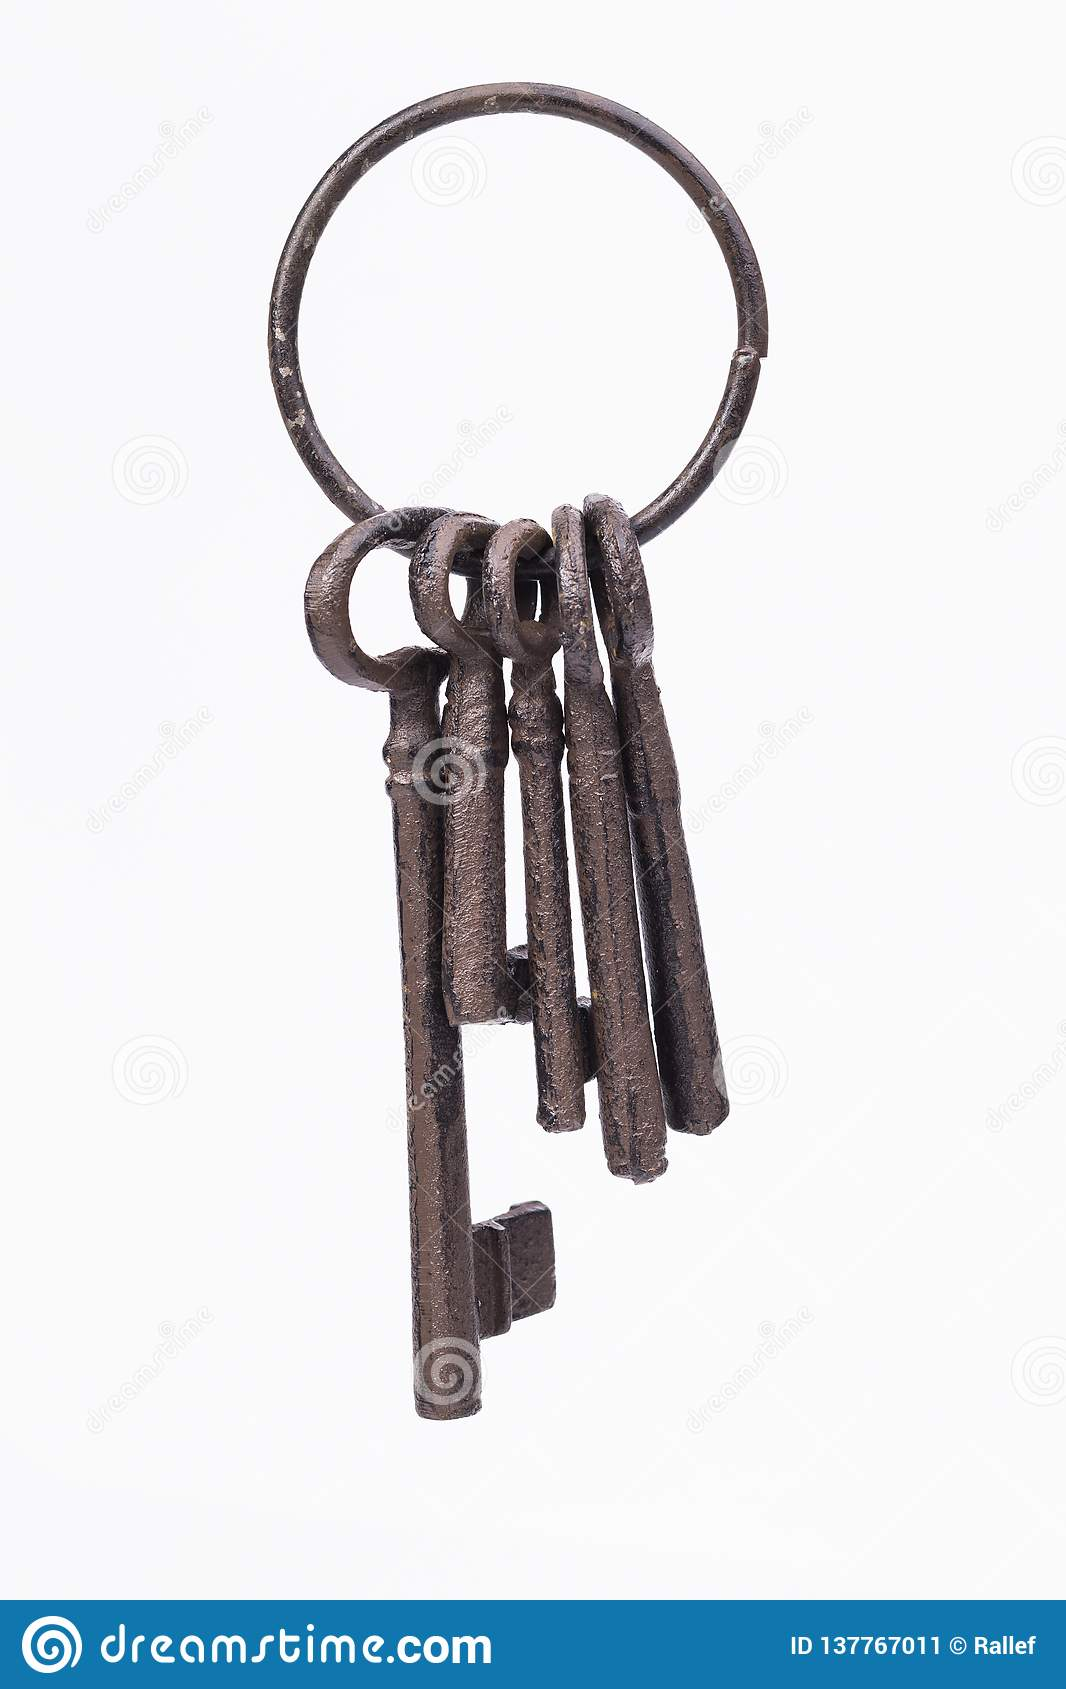 Rustic key ring isolated on white